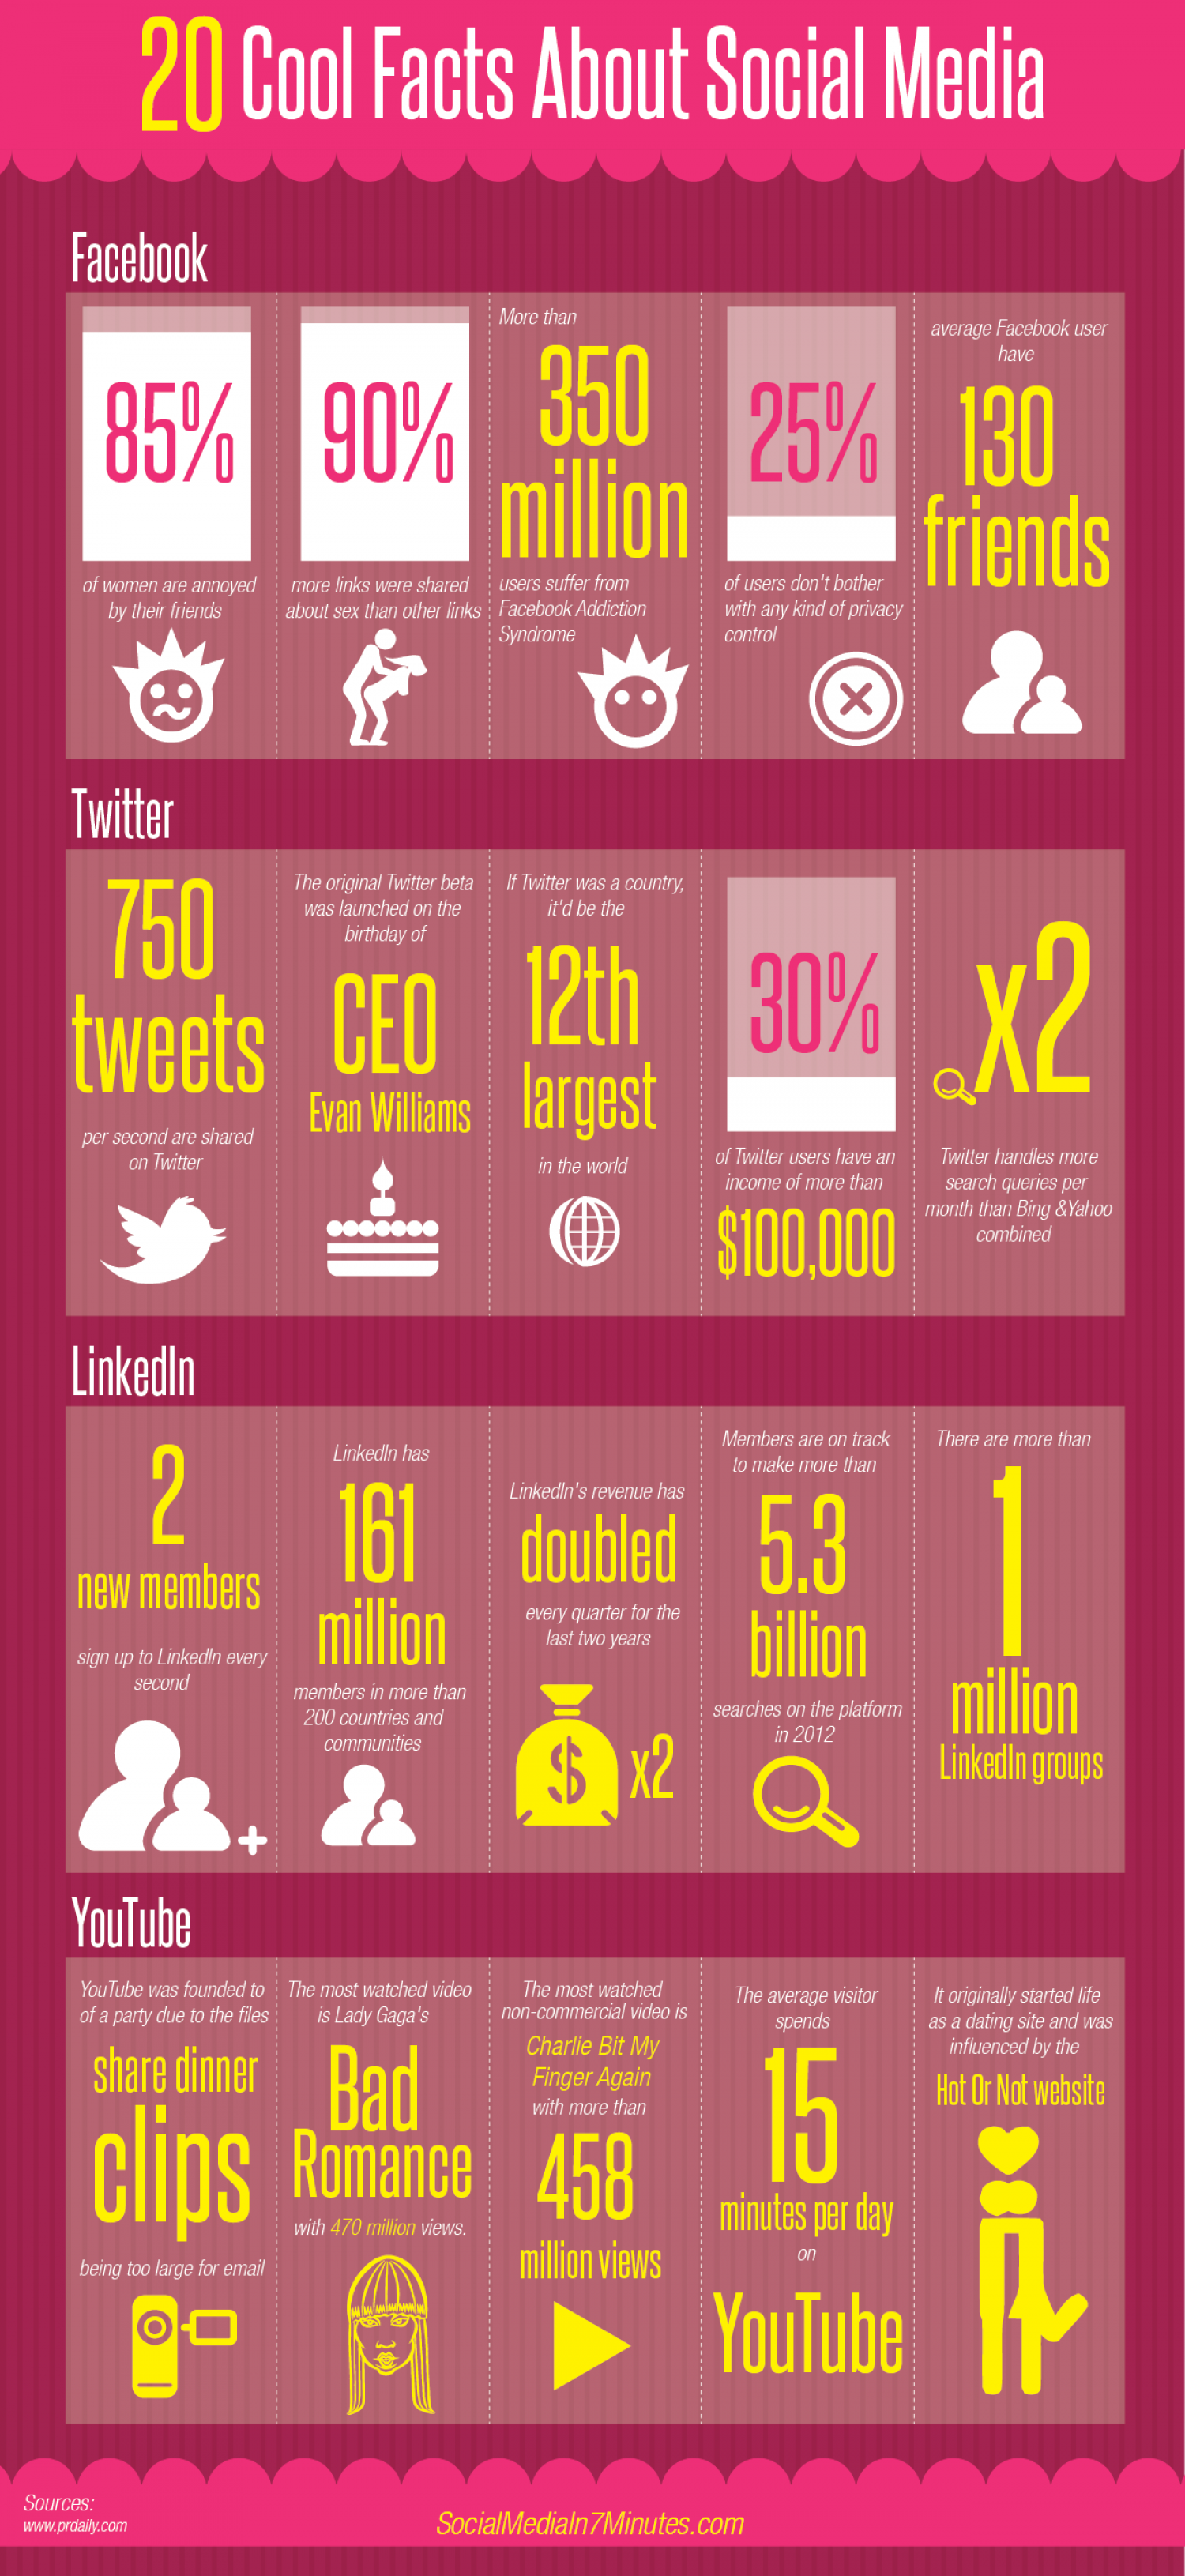 20 Cool Facts About Social Media Infographic